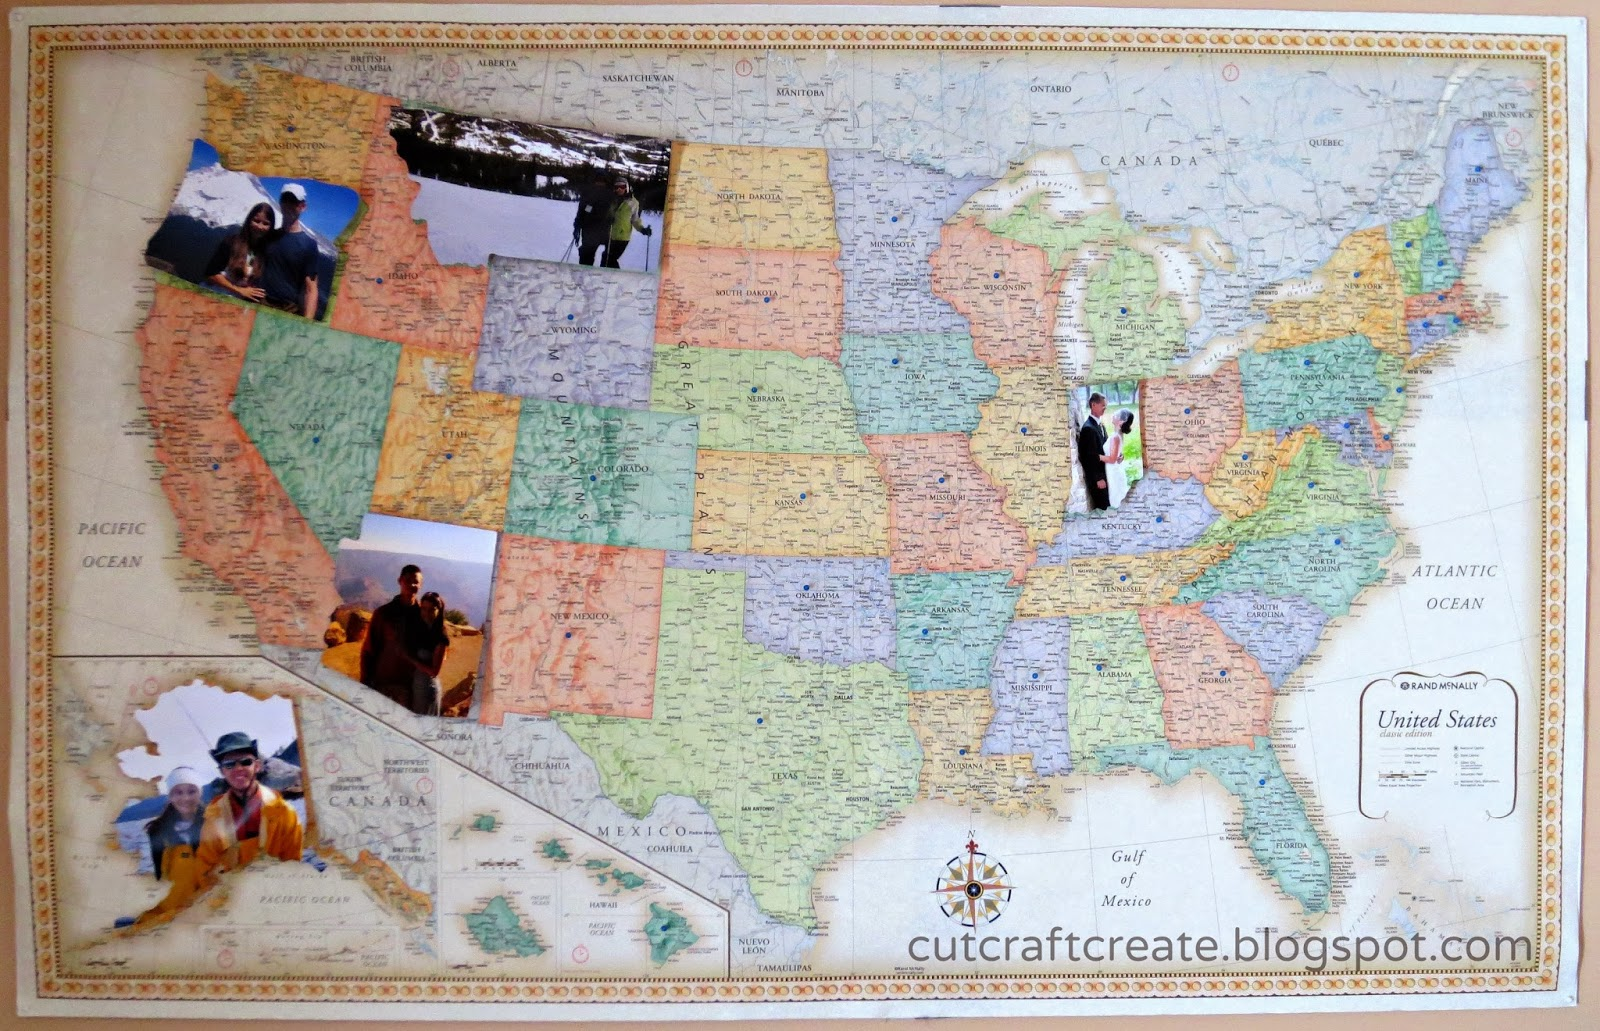 Us Map Photo Collage.Cut Craft Create Personalized Photo Map